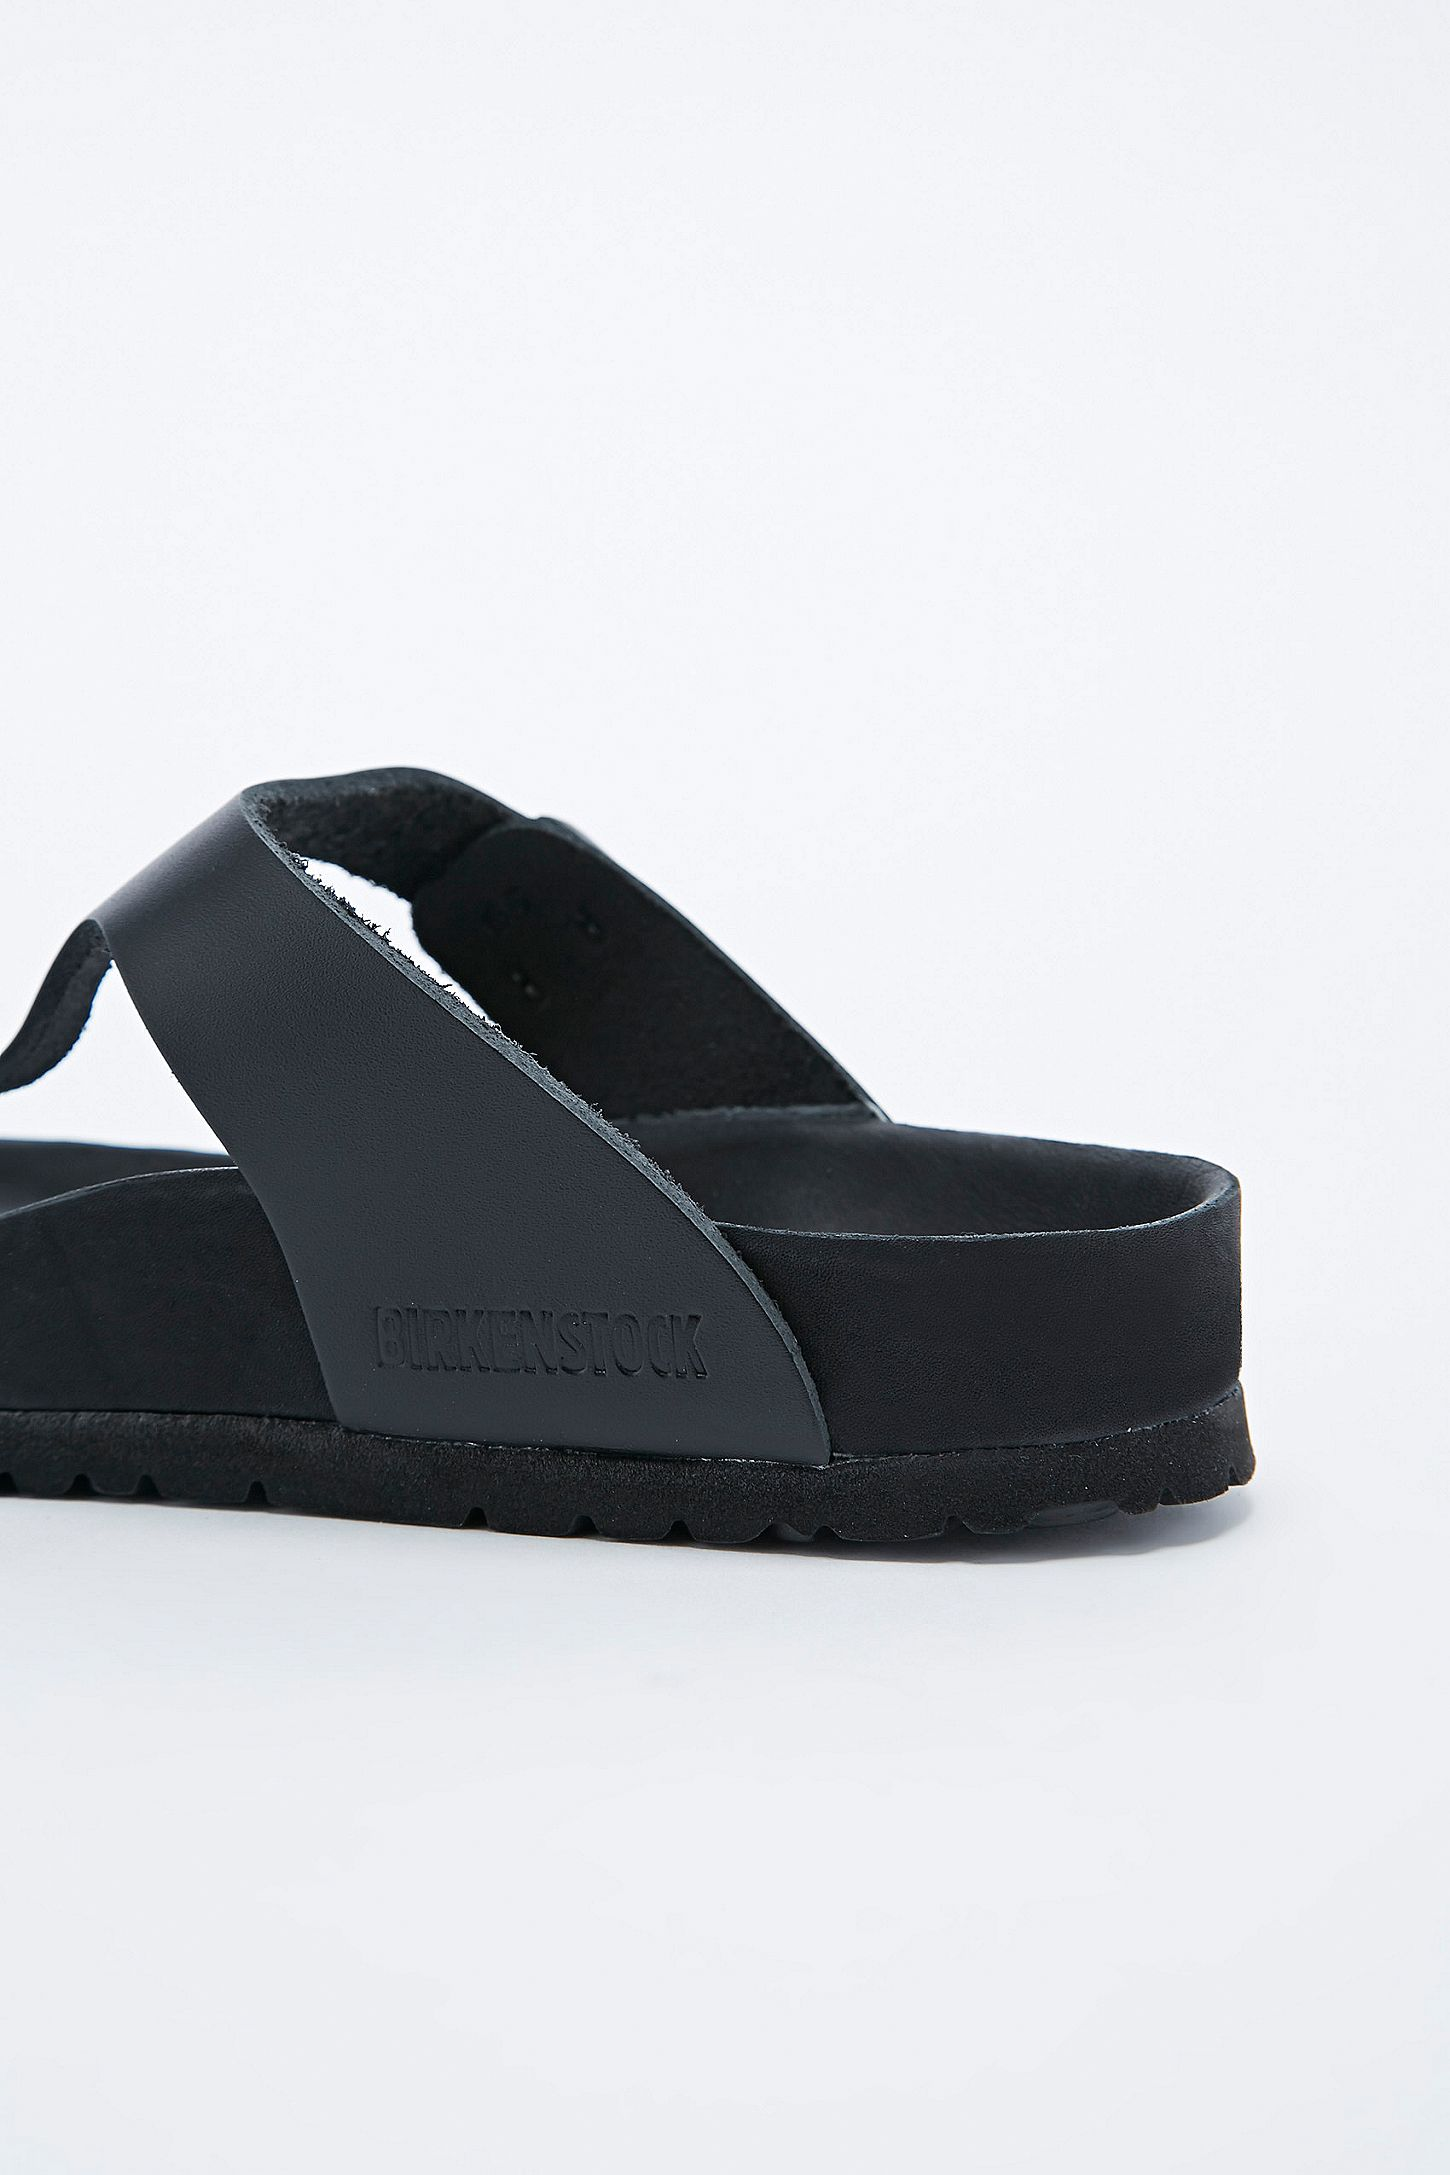 672a08cc7761 Slide View  5  Birkenstock Gizeh Exquisite Leather Sandals in Black